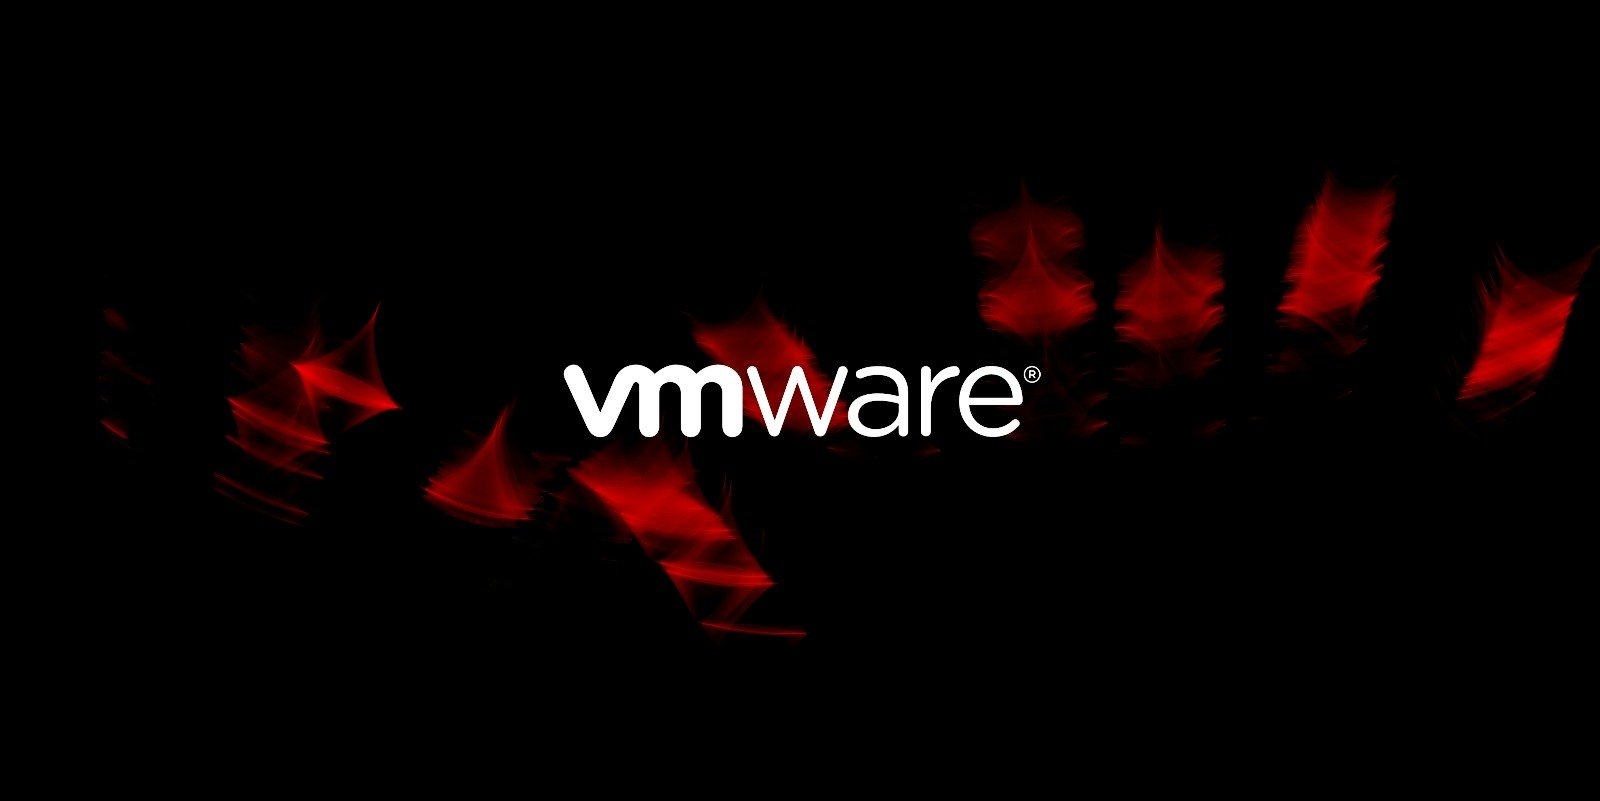 Attackers are scanning for vulnerable VMware servers, patch now!